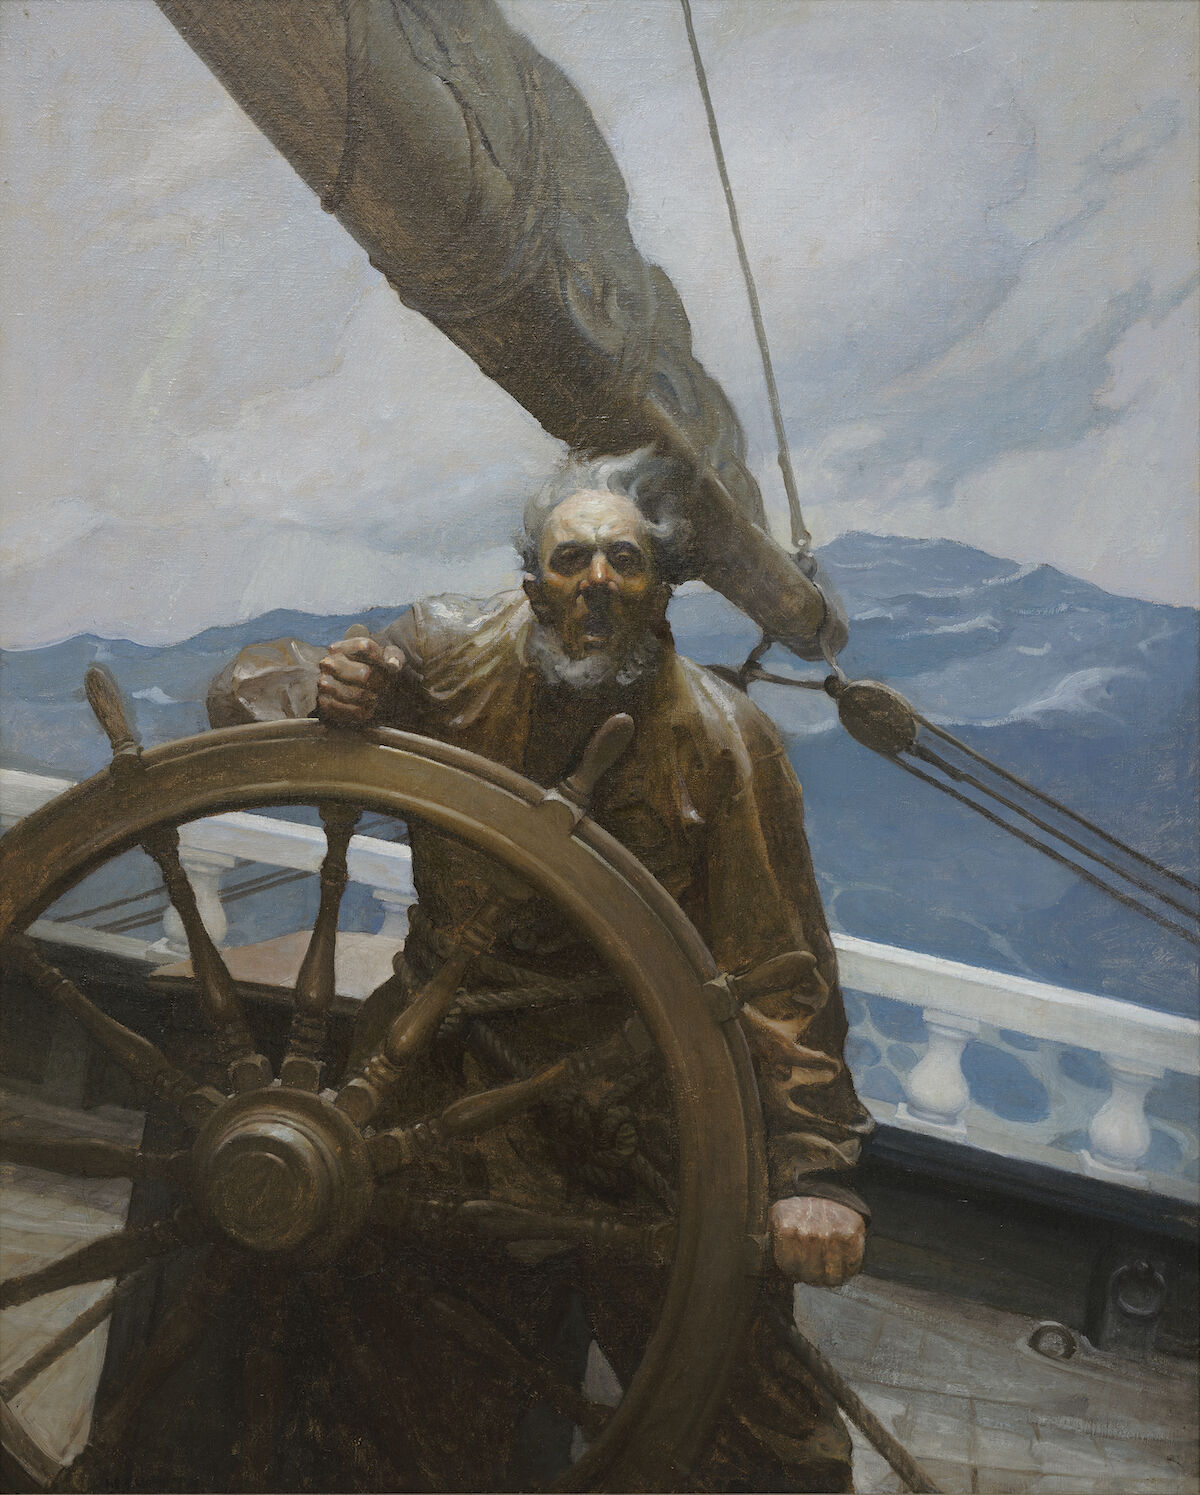 "N. C. Wyeth, Yes, 'N', He'd Let a Roar Outer Him, An' Mebbe He'd Sing, ""Hail Columbia, Happy Land!,""  1914. Courtesy of the Brandywine River Museum of Art."